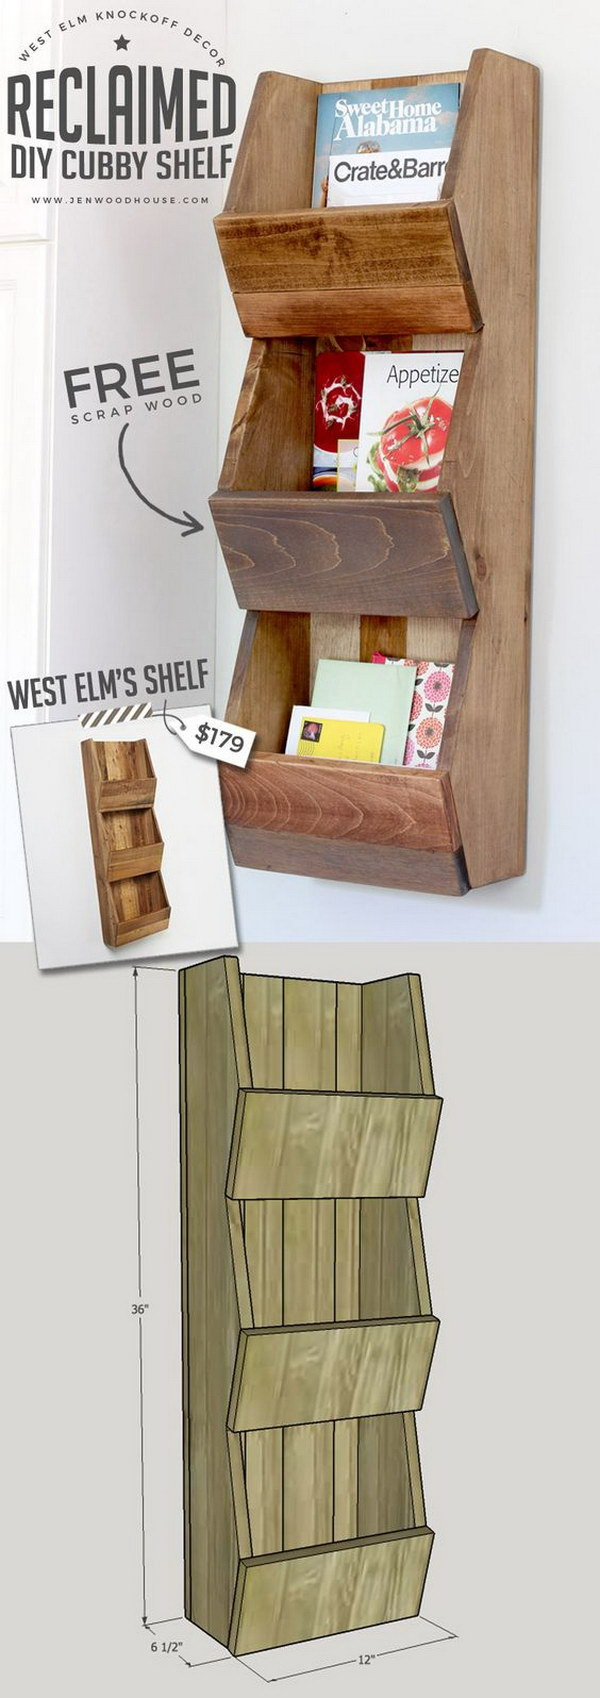 4 West Elm Knockoff Reclaimed Cubby Shelf